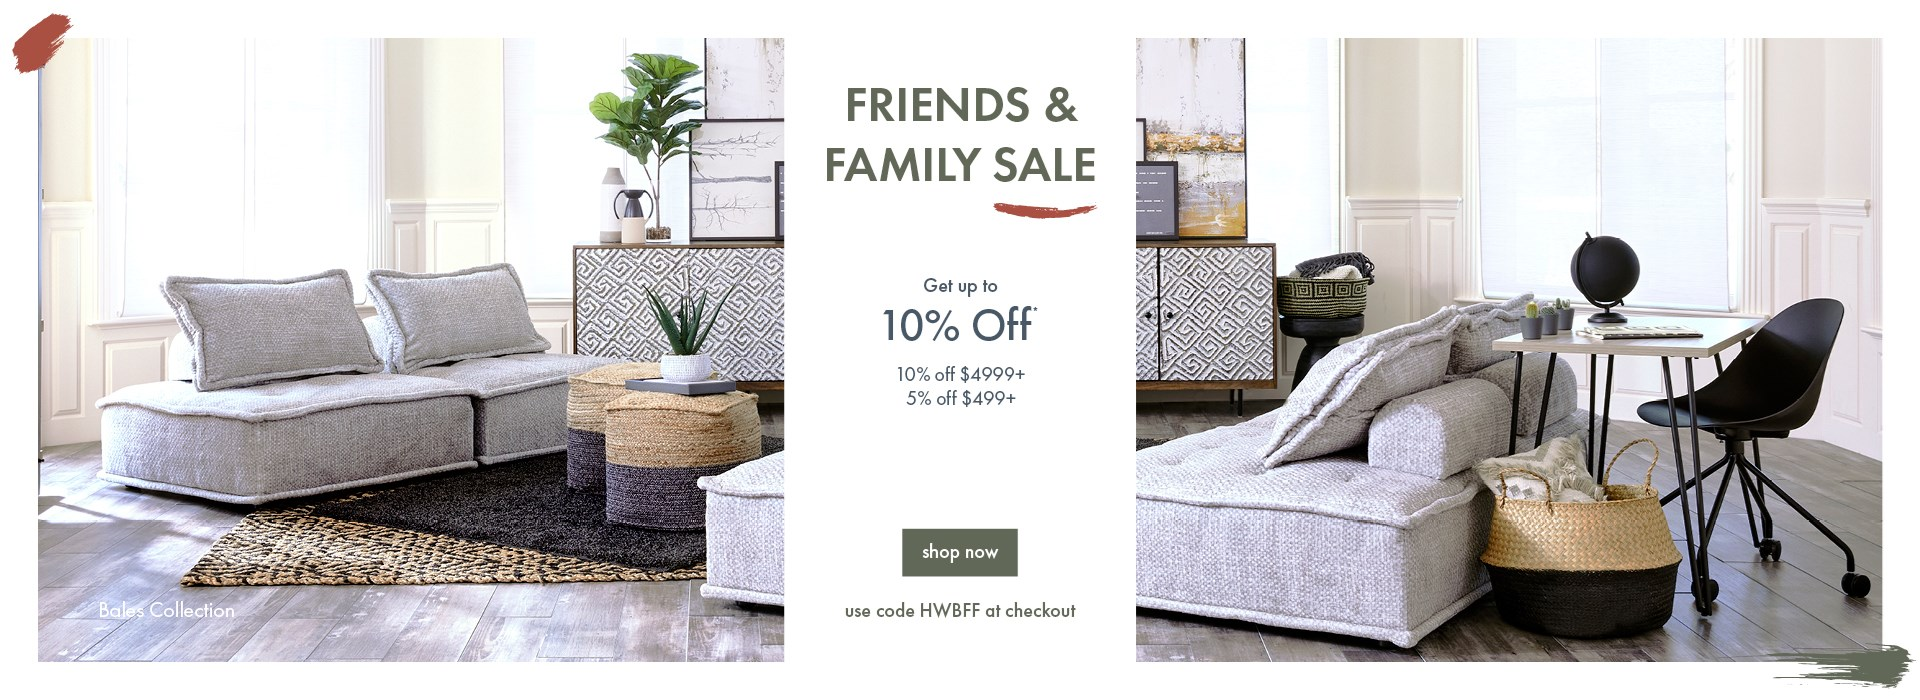 Get up to 10% off qualifying purchase.